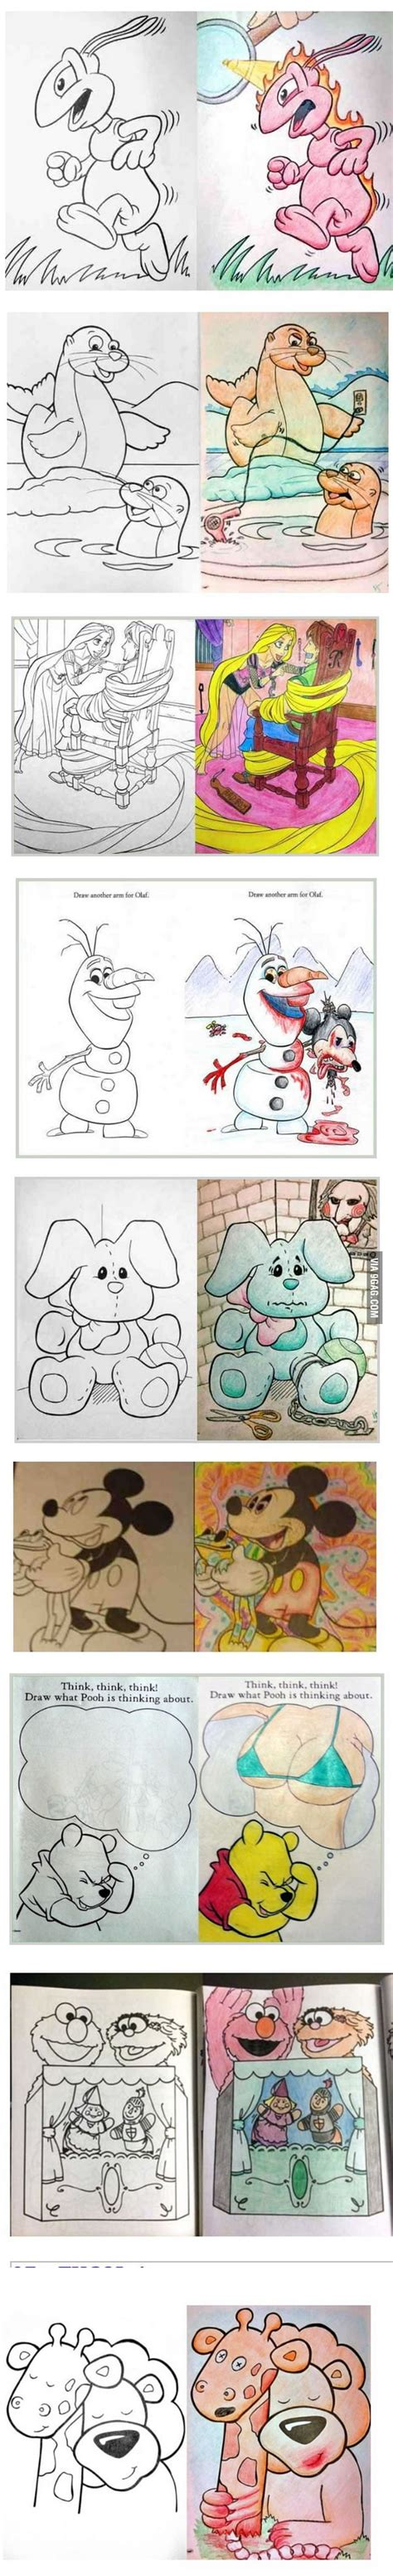 9gag Sketches by Hilarious Coloring Book Drawings 9gag